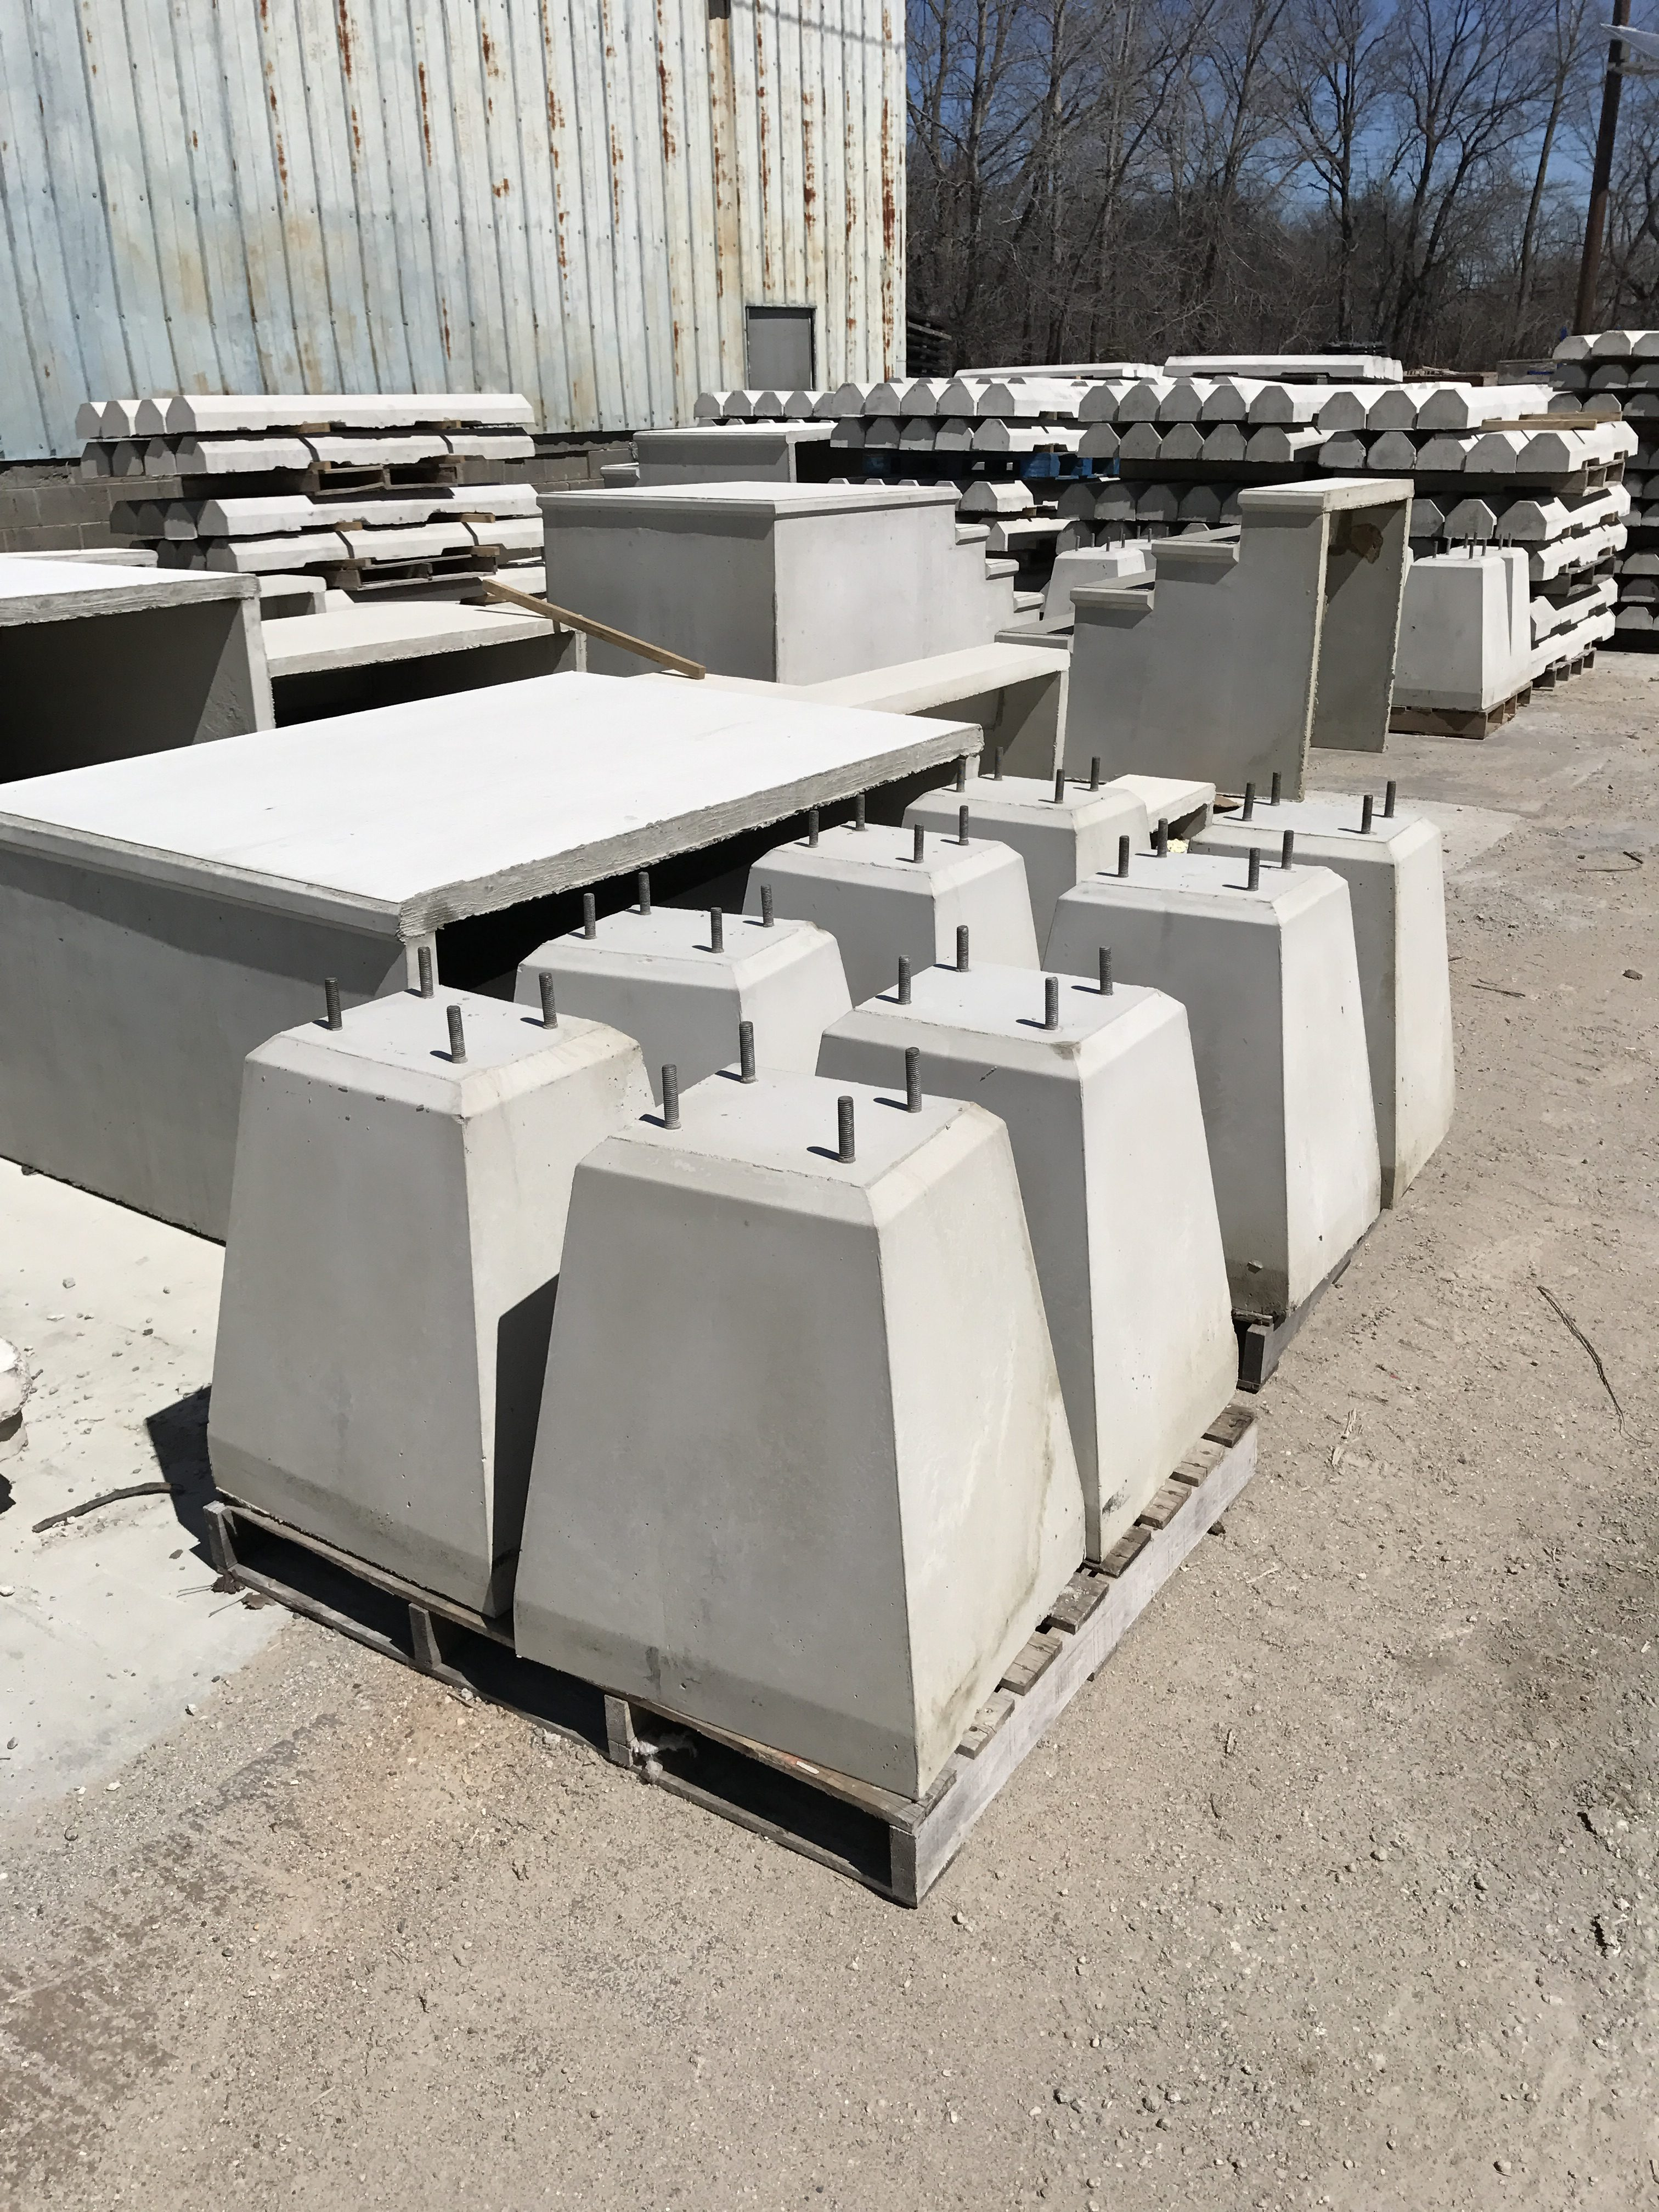 Gallery Totowa Concrete Products